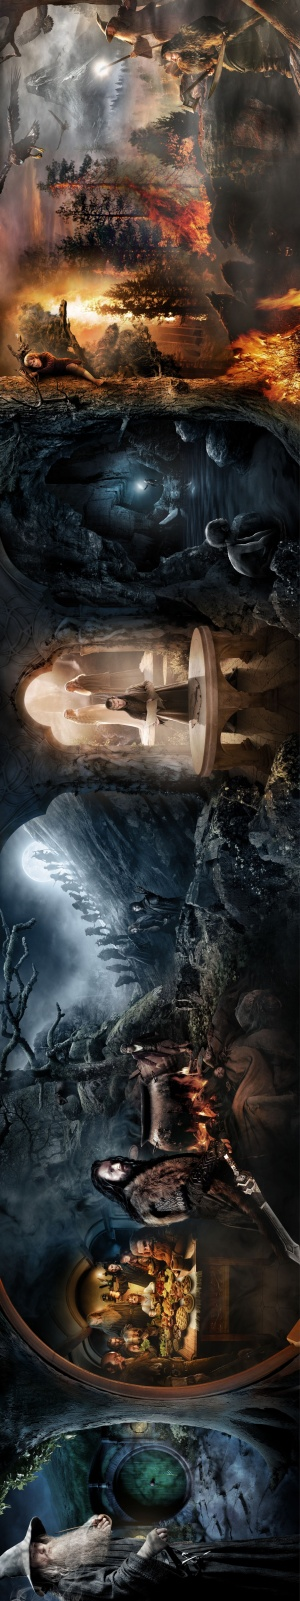 The Hobbit: An Unexpected Journey Key art